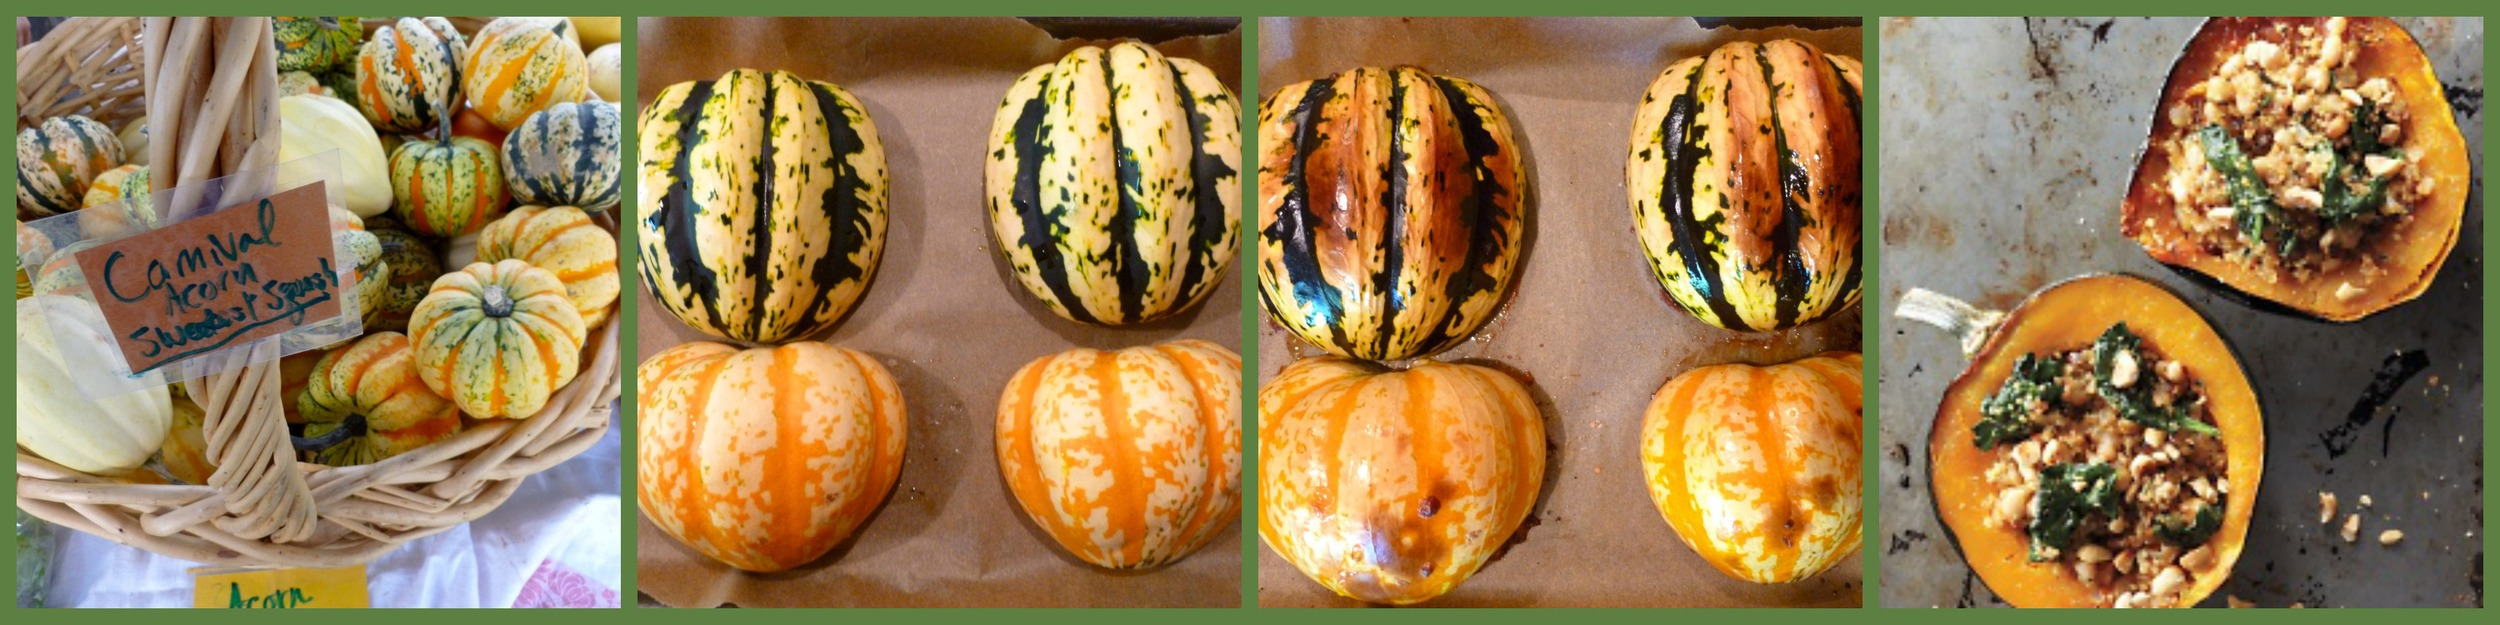 I used carnival squash! Yummy flavor! Roast the squash, stuff, bake, enjoy!